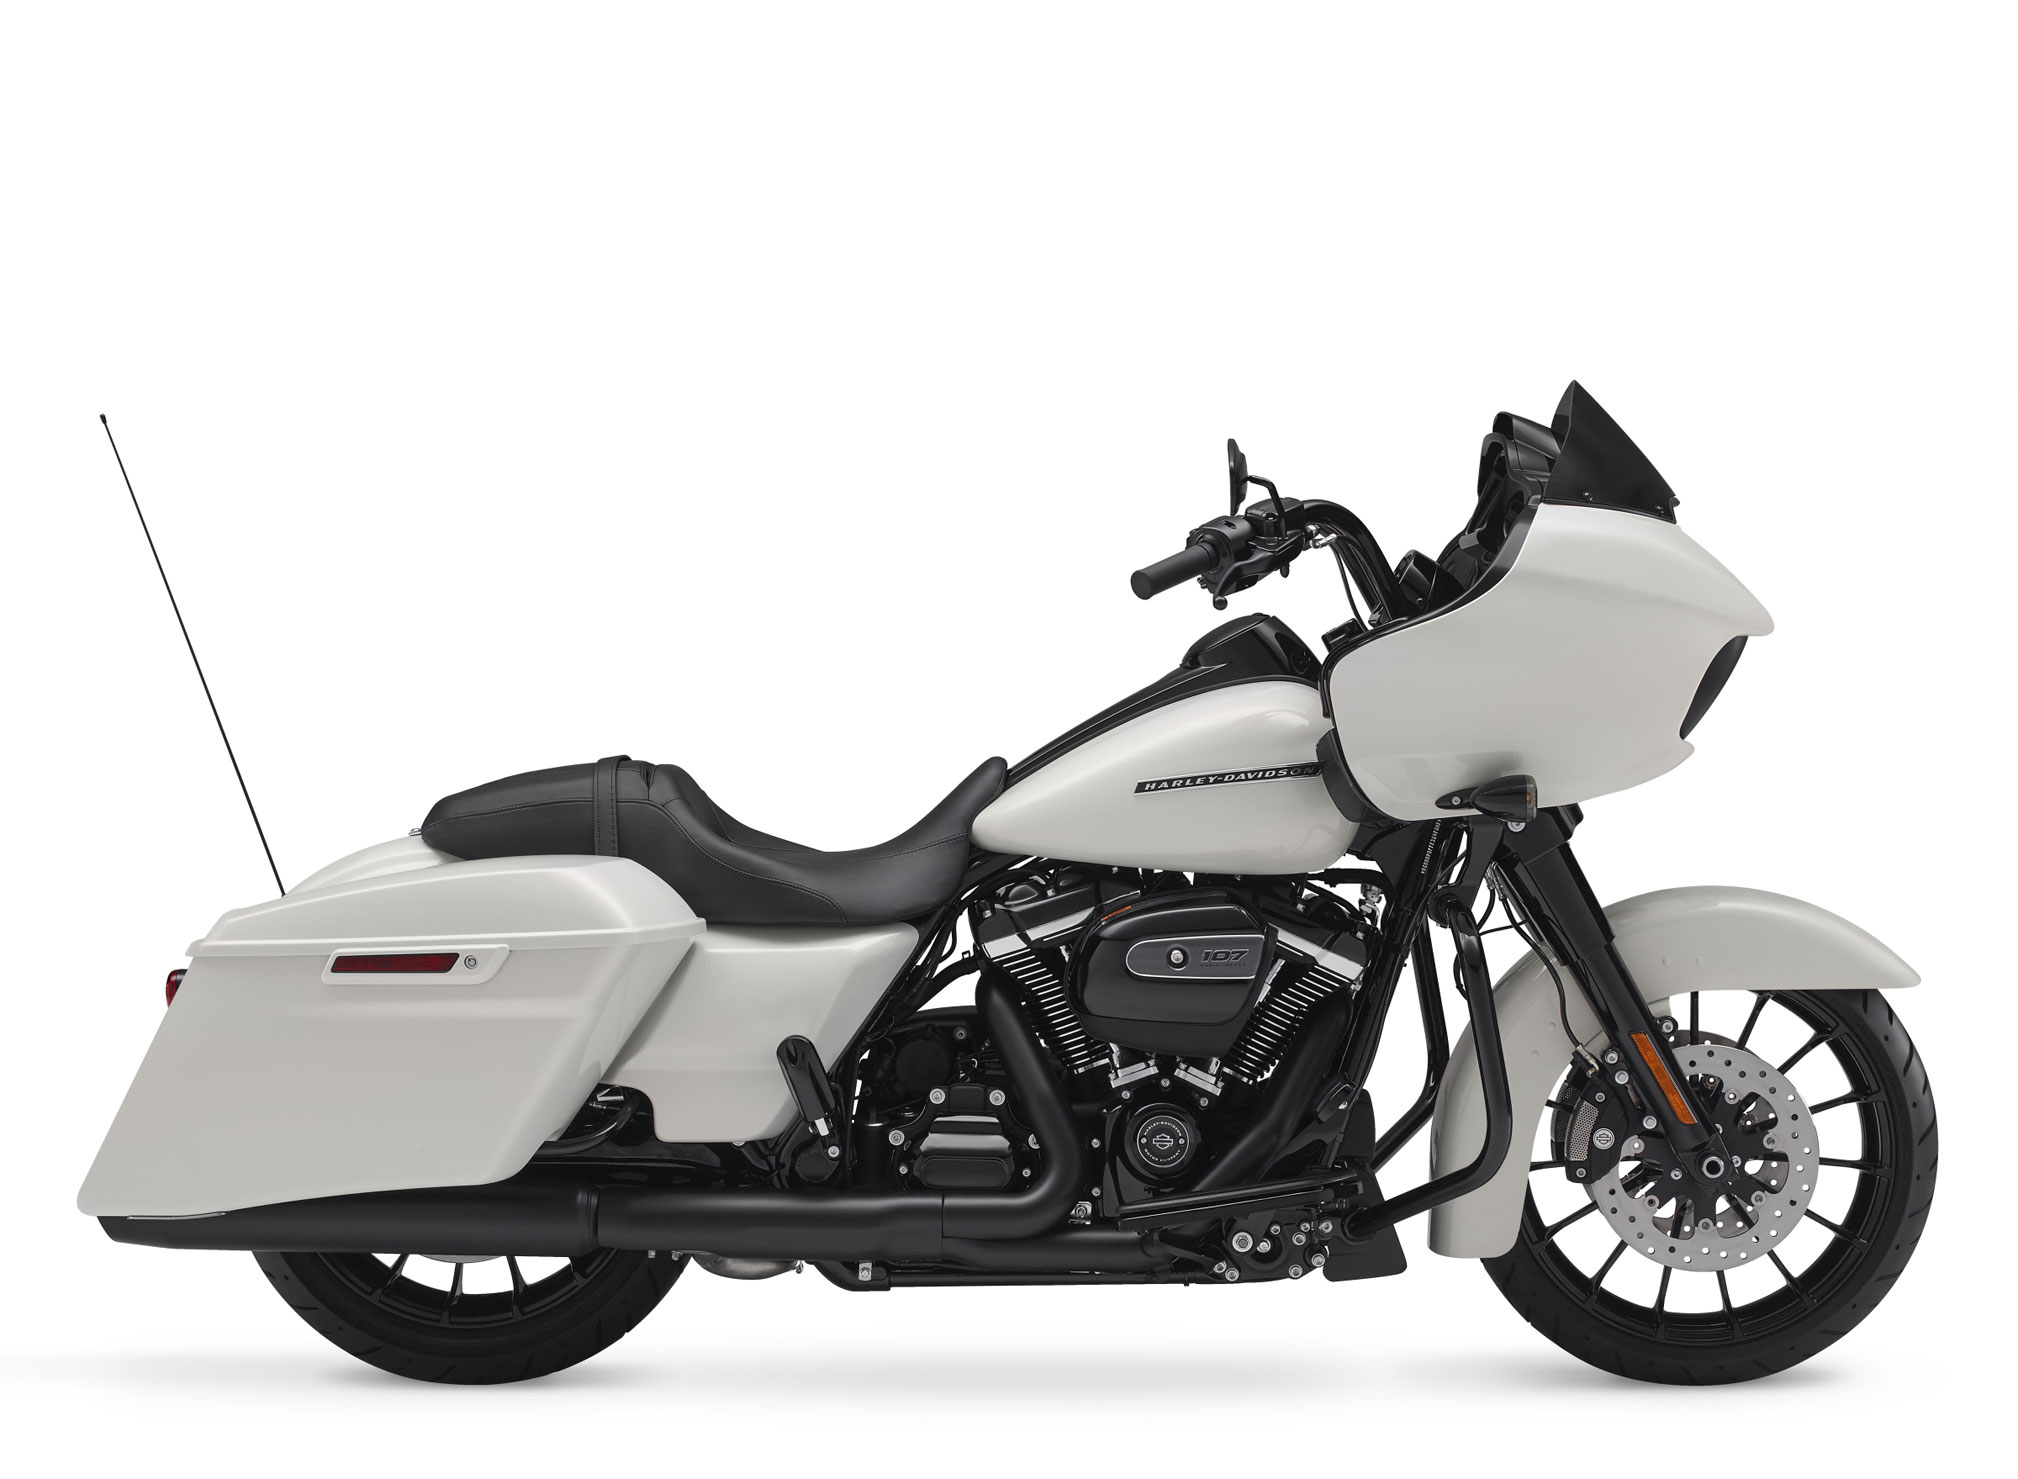 2018 Harley Davidson Road Glide Special Review Total Motorcycle